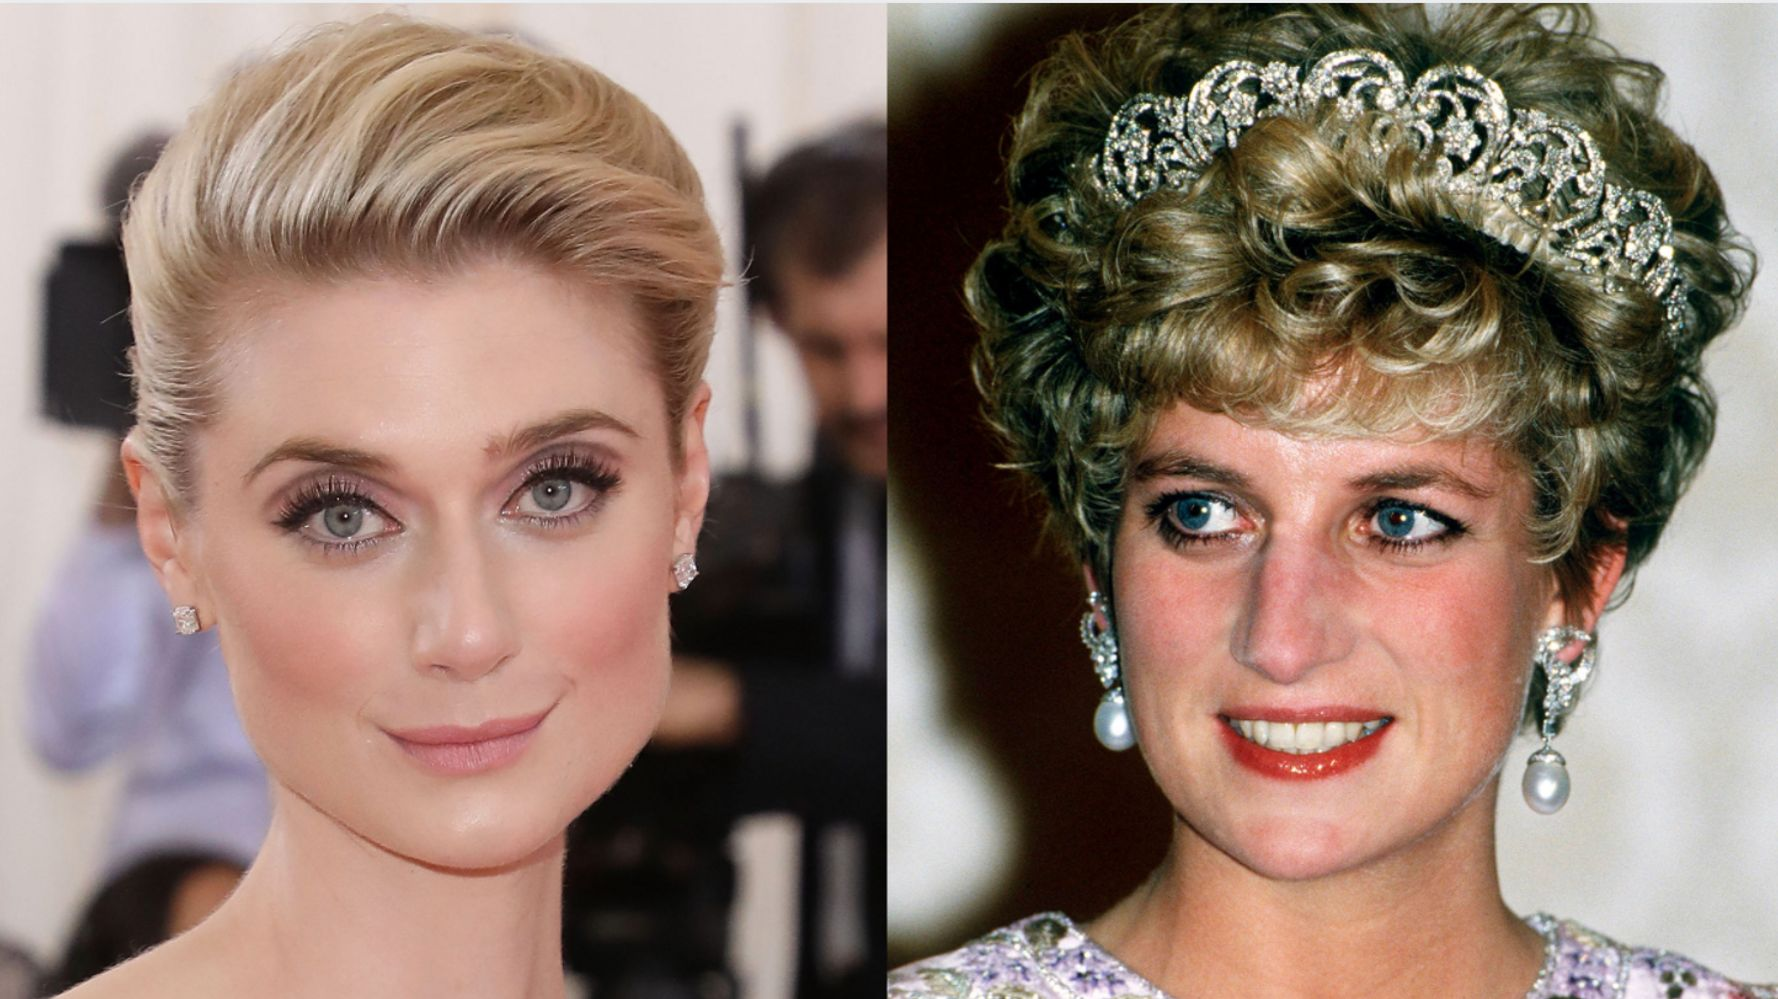 Elizabeth Debicki To Play Princess Diana In Final 2 Seasons Of The Crown Gized Breaking And Current News Worldwide